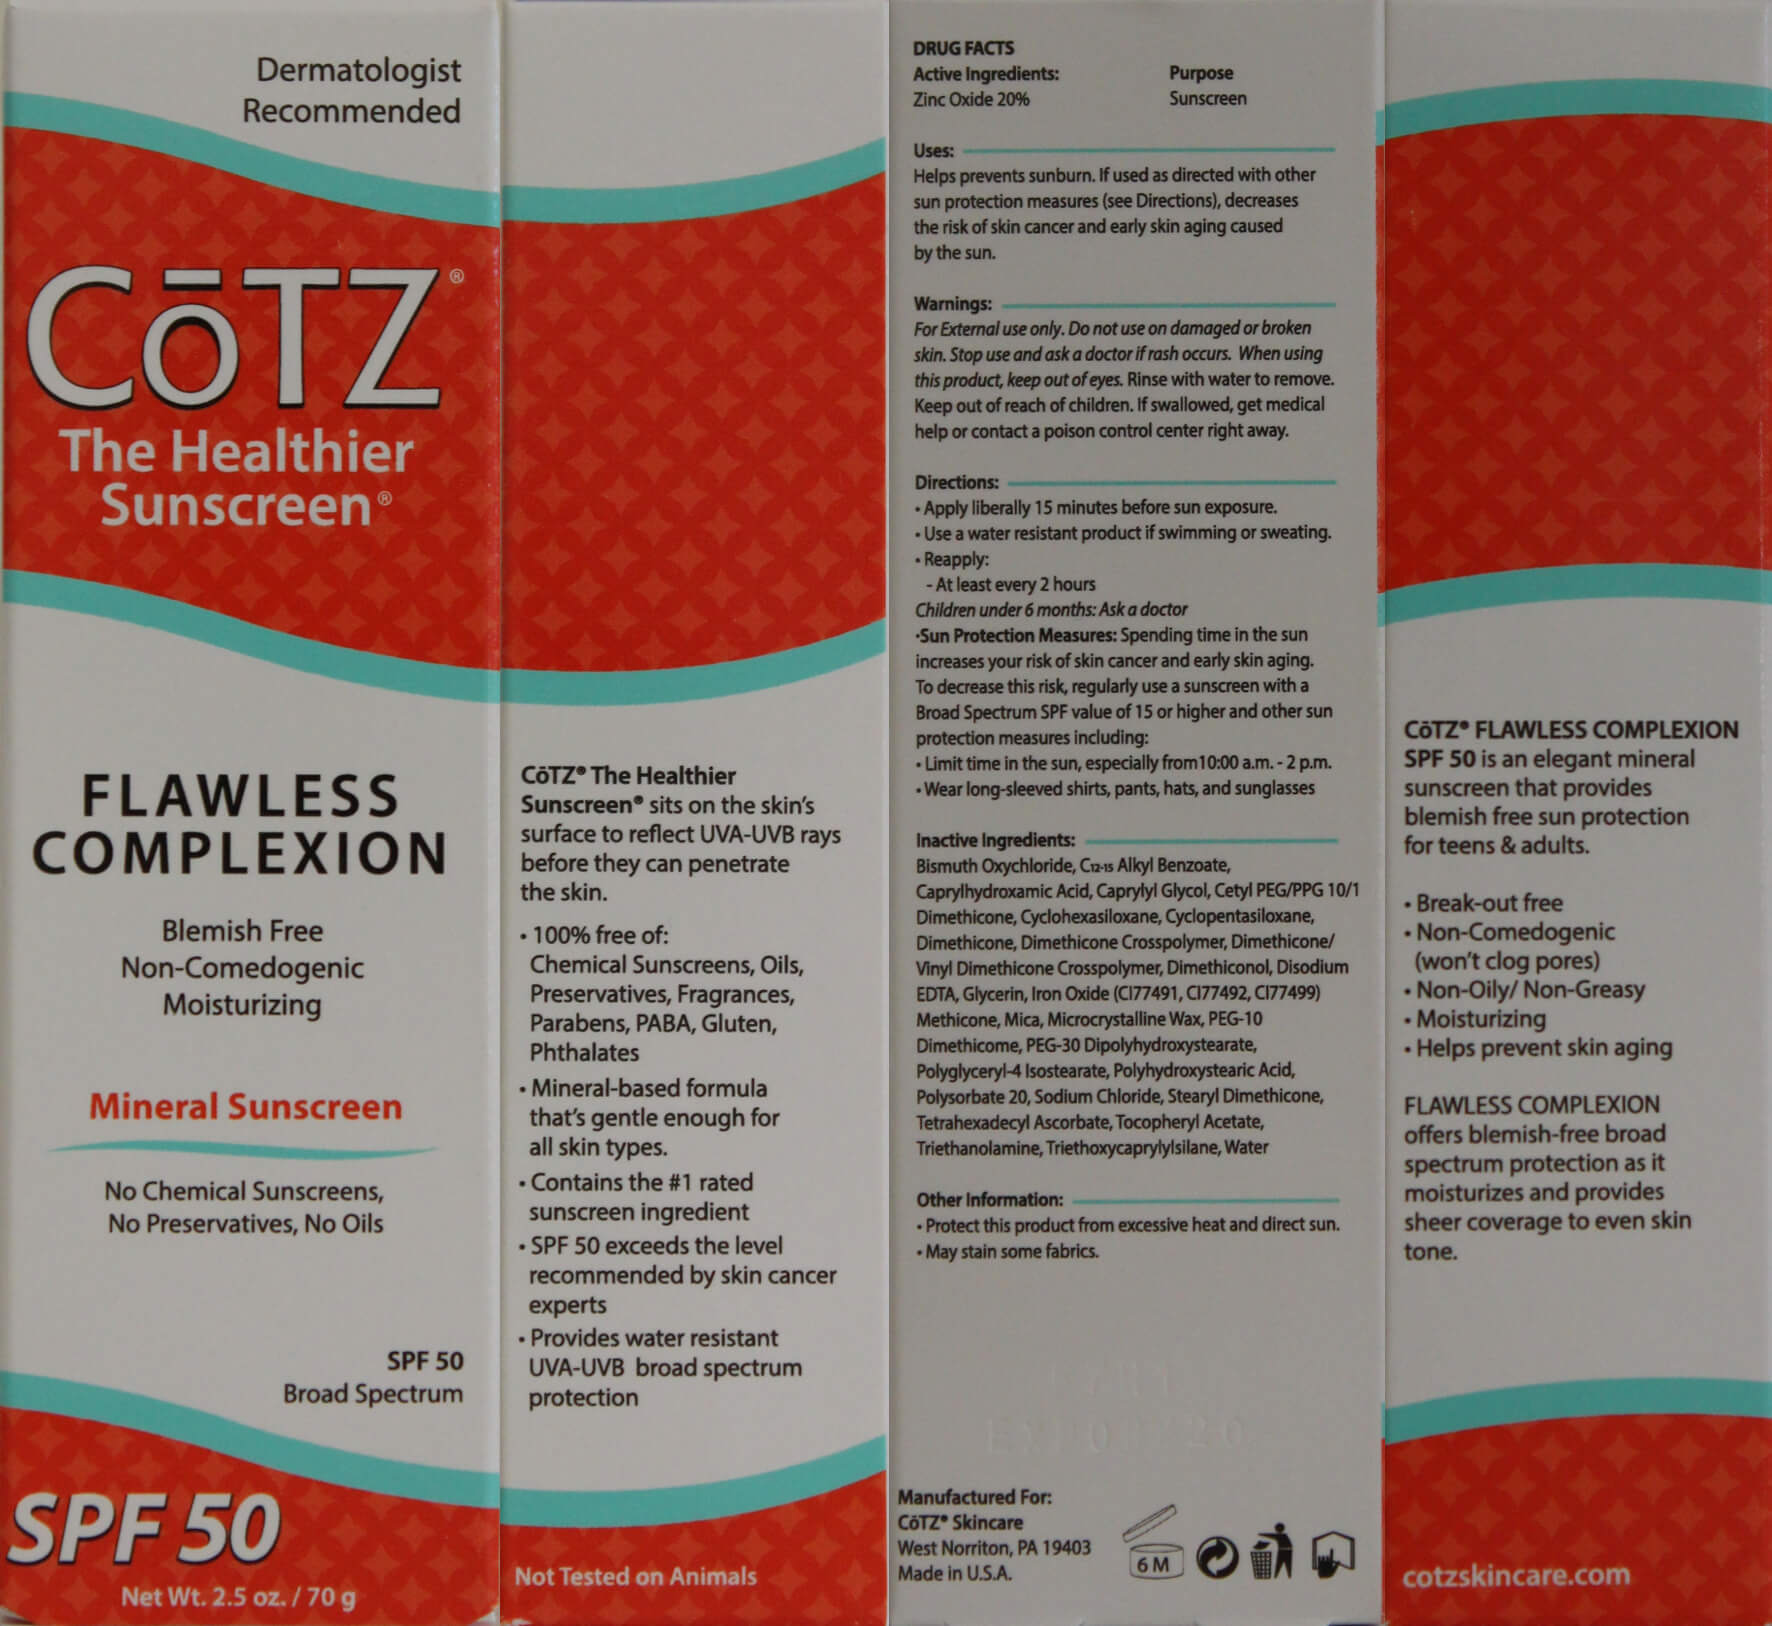 CoTZ Flawless Complexion Box